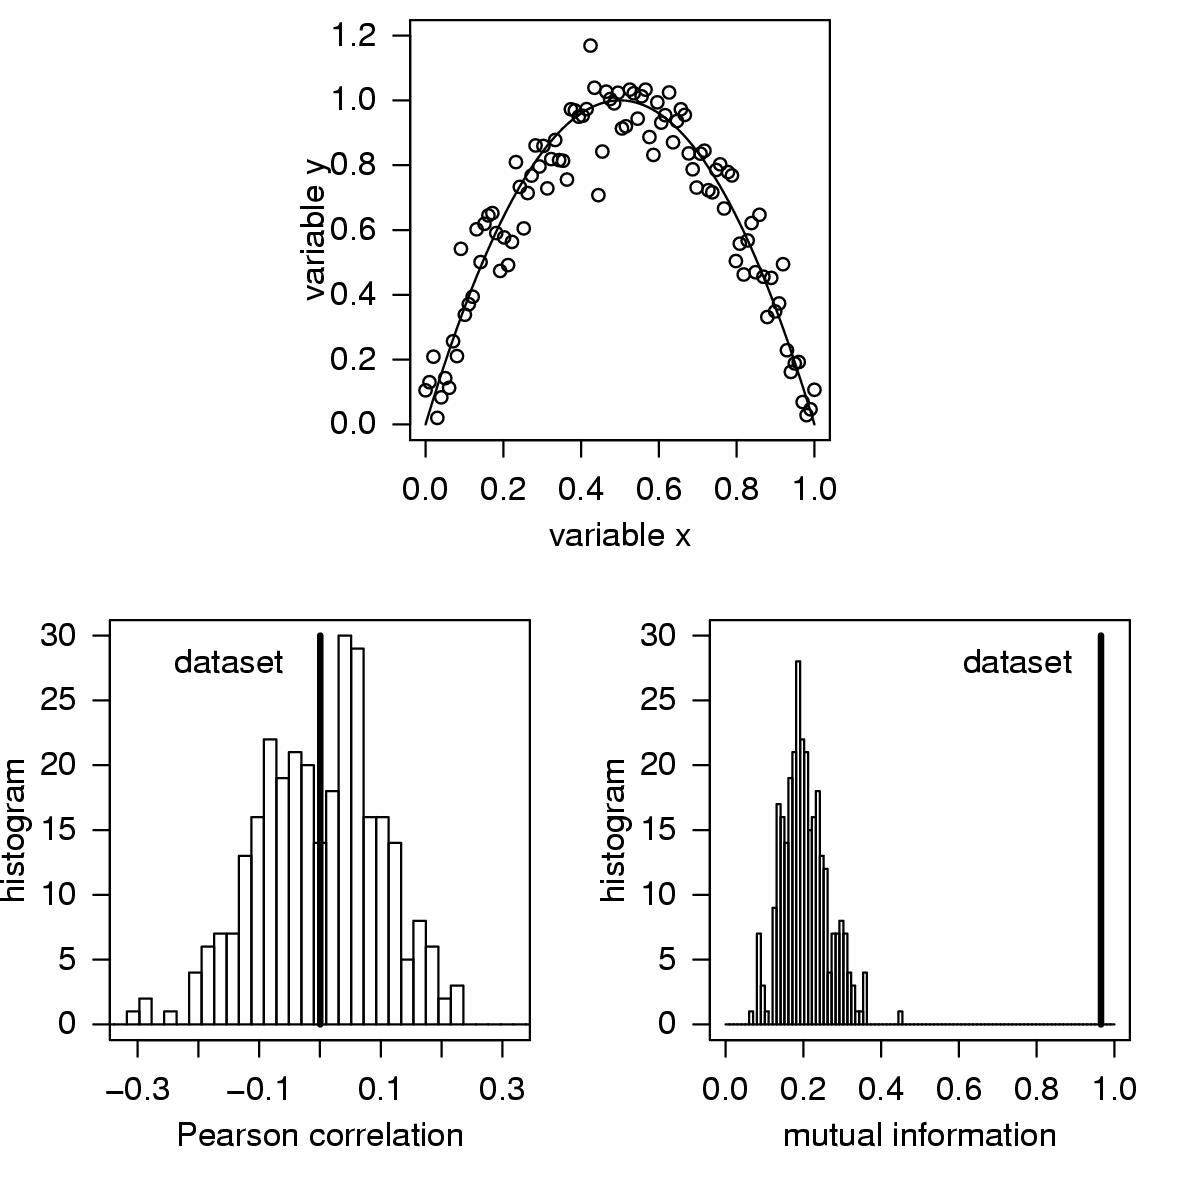 https://static-content.springer.com/image/art%3A10.1186%2F1471-2105-5-118/MediaObjects/12859_2003_Article_234_Fig1_HTML.jpg